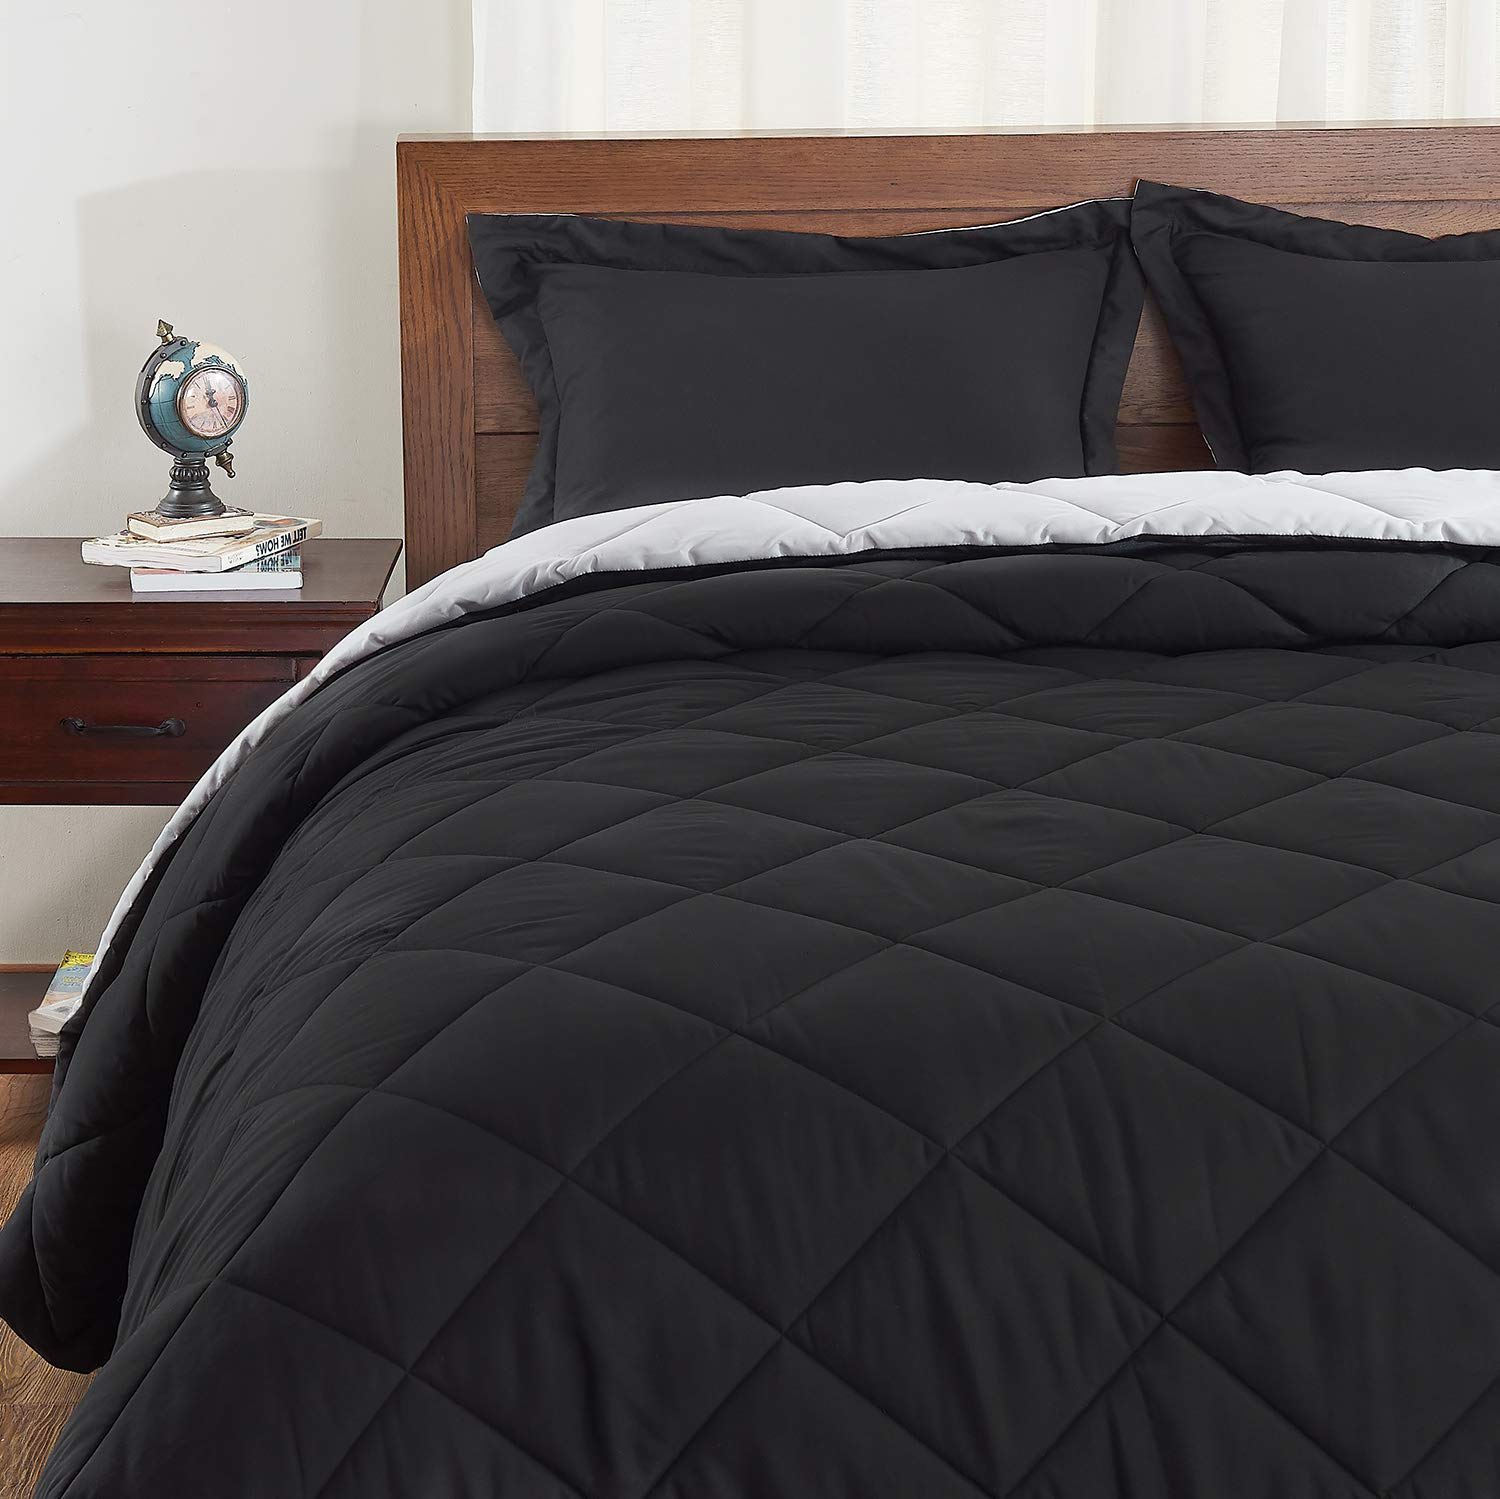 Basic Beyond Down Alternative Comforter Set (Queen, Black/Grey) - Reversible Bed Comforter with 2 Pillow Shams for All Seasons